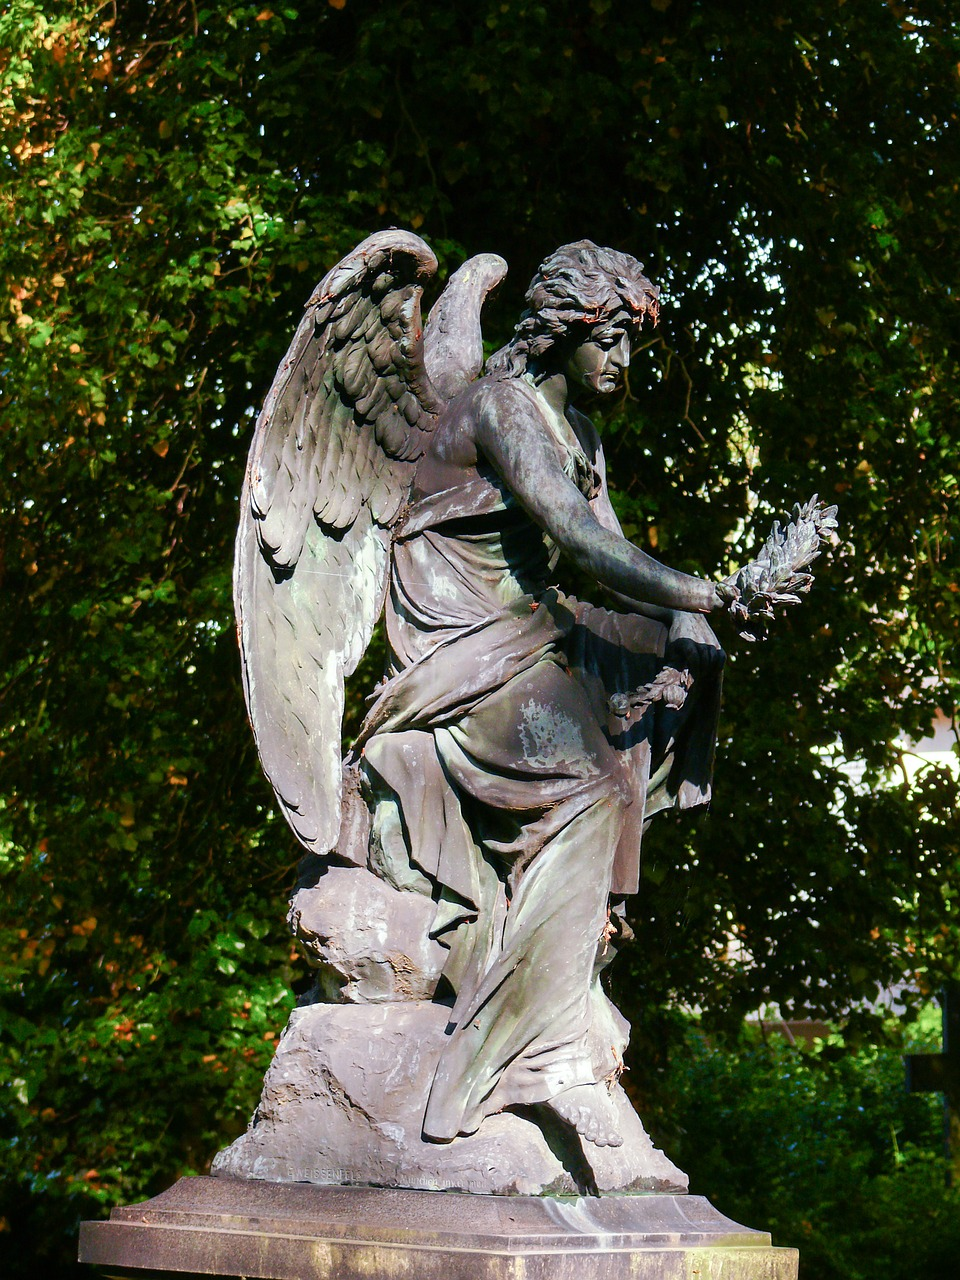 sculpture,cemetery,angel,statue,stone sculpture,monument,free pictures, free photos, free images, royalty free, free illustrations, public domain